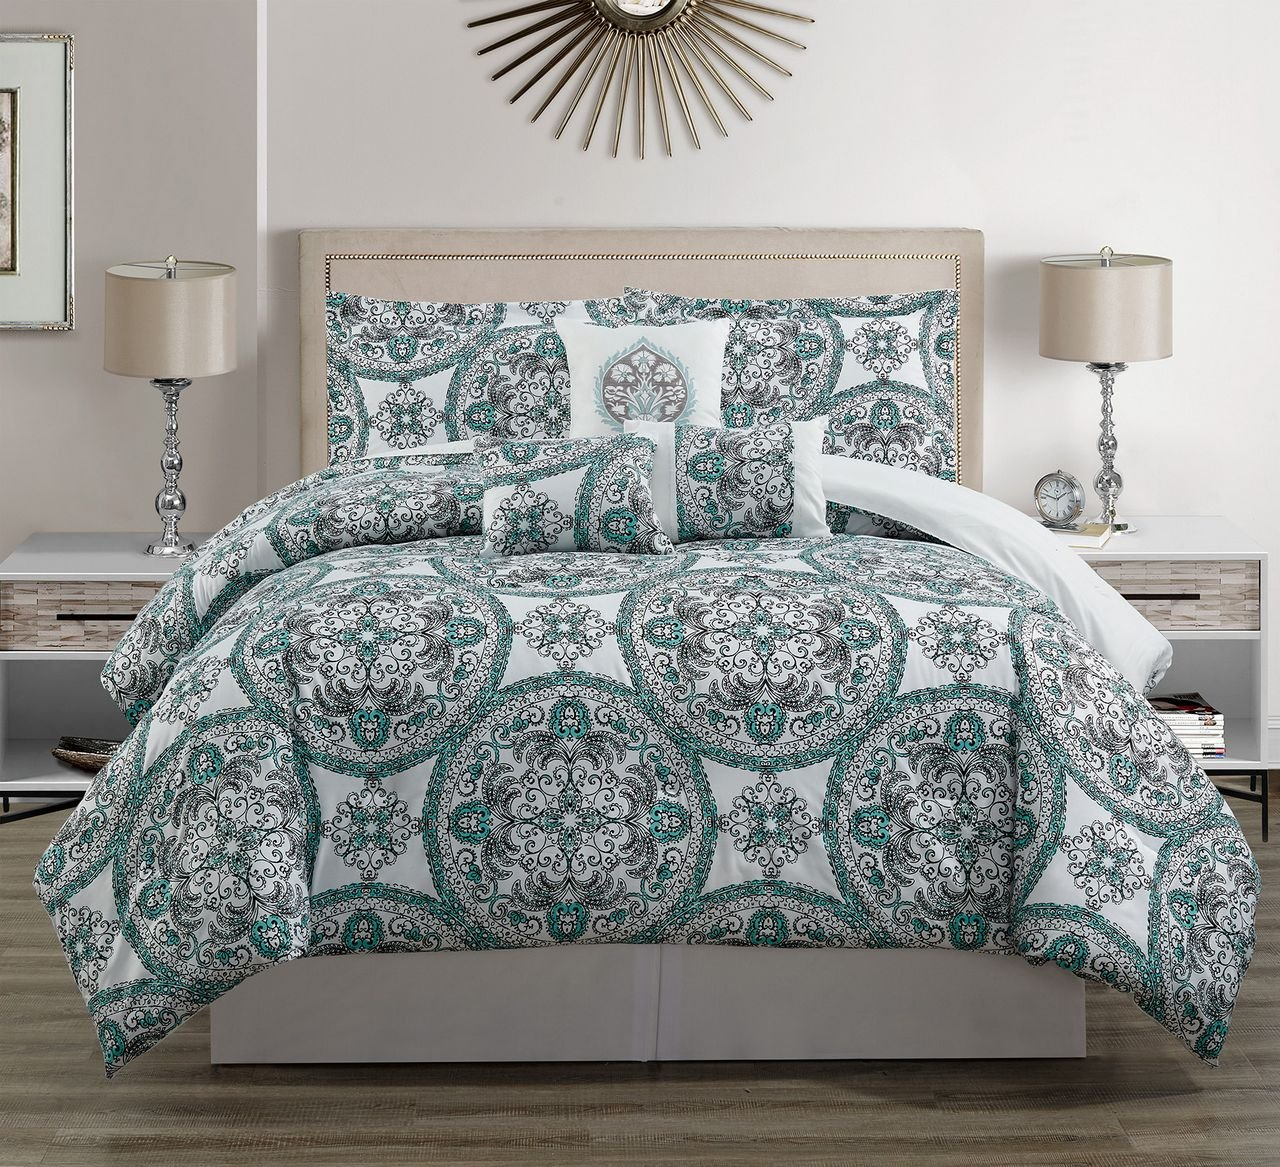 11 Piece Teal/Gray/White Bed in a Bag Set Queen